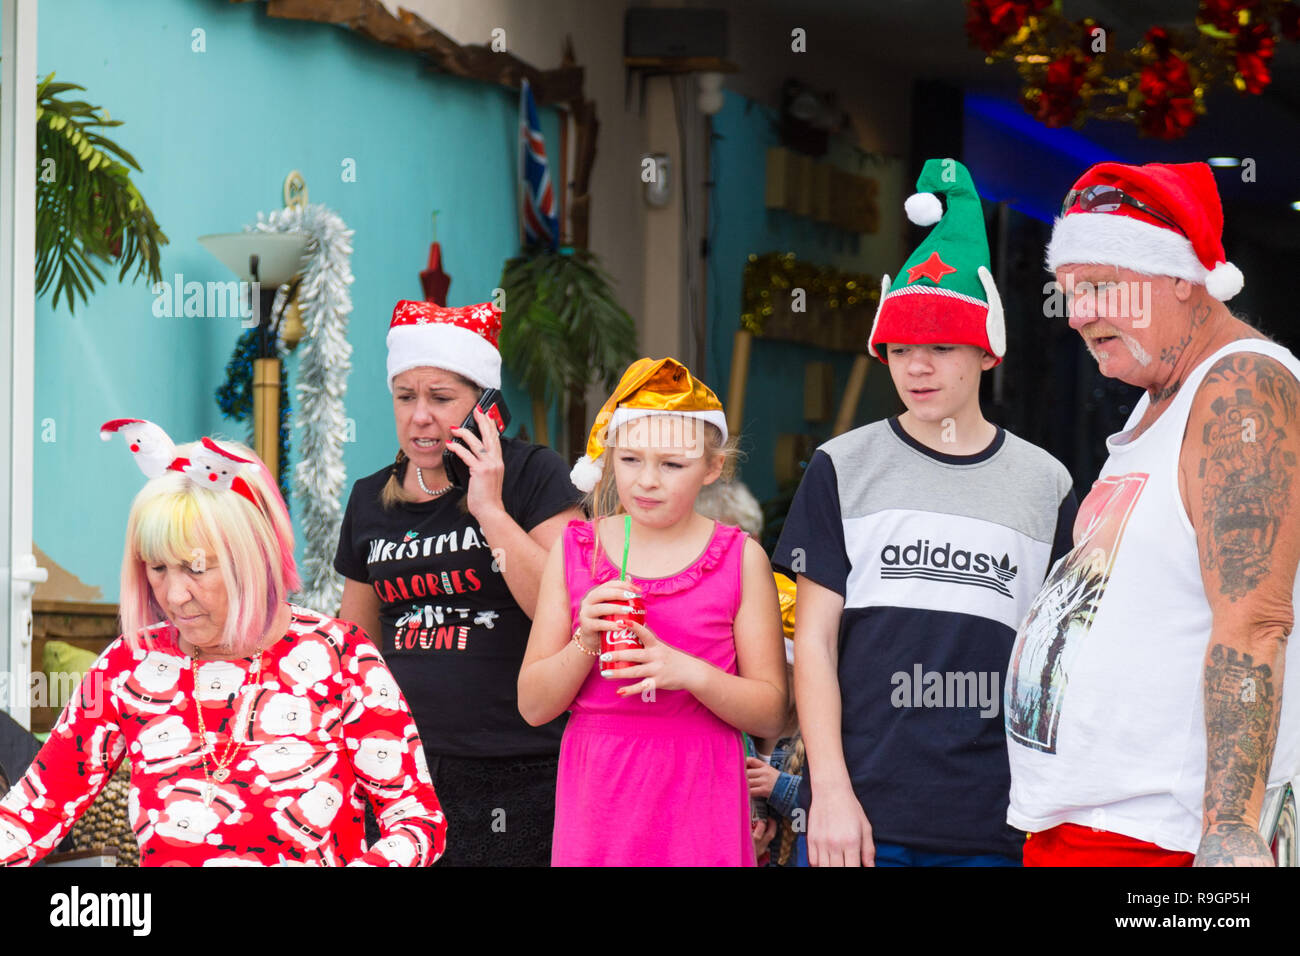 Benidorm, Costa Blanca, Spain, 25th December 2018. British tourists dress for the occasion on Christmas Day in this favourite getaway destination for Brits escaping the cold weather at home. Temperatures will be in the mid to high 20's Celsius today in this mediterranean hotspot. Family with kids outside wearing Christmas clothing and hats. Stock Photo